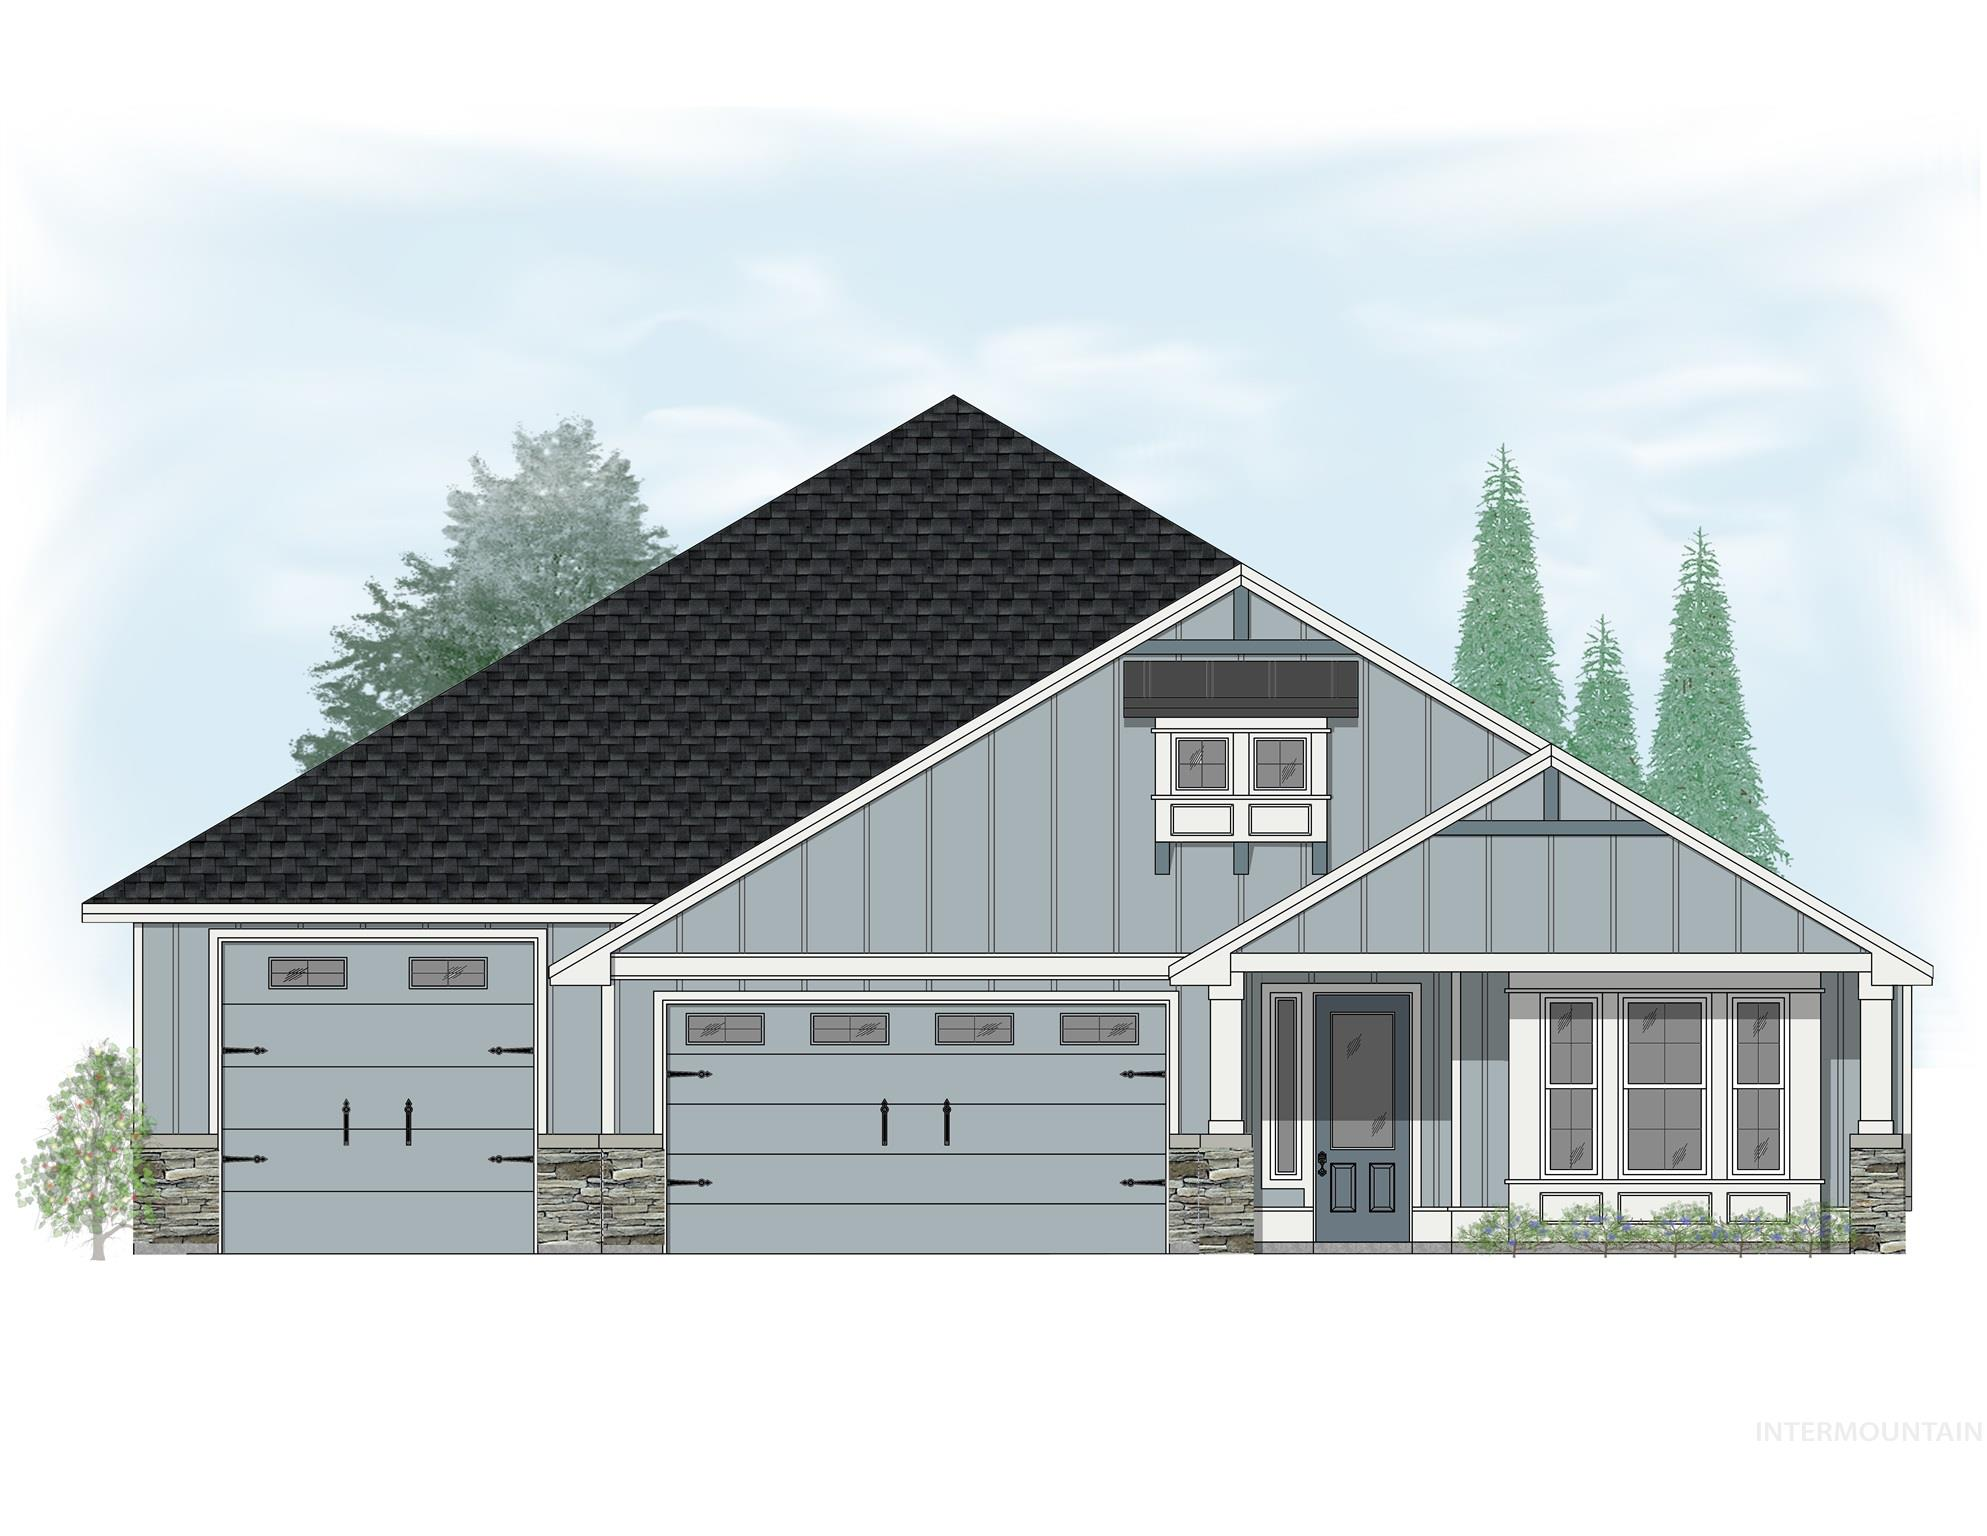 Photo for 1795 N Ryde Ave, Kuna, ID 83634 (MLS # 98775761)